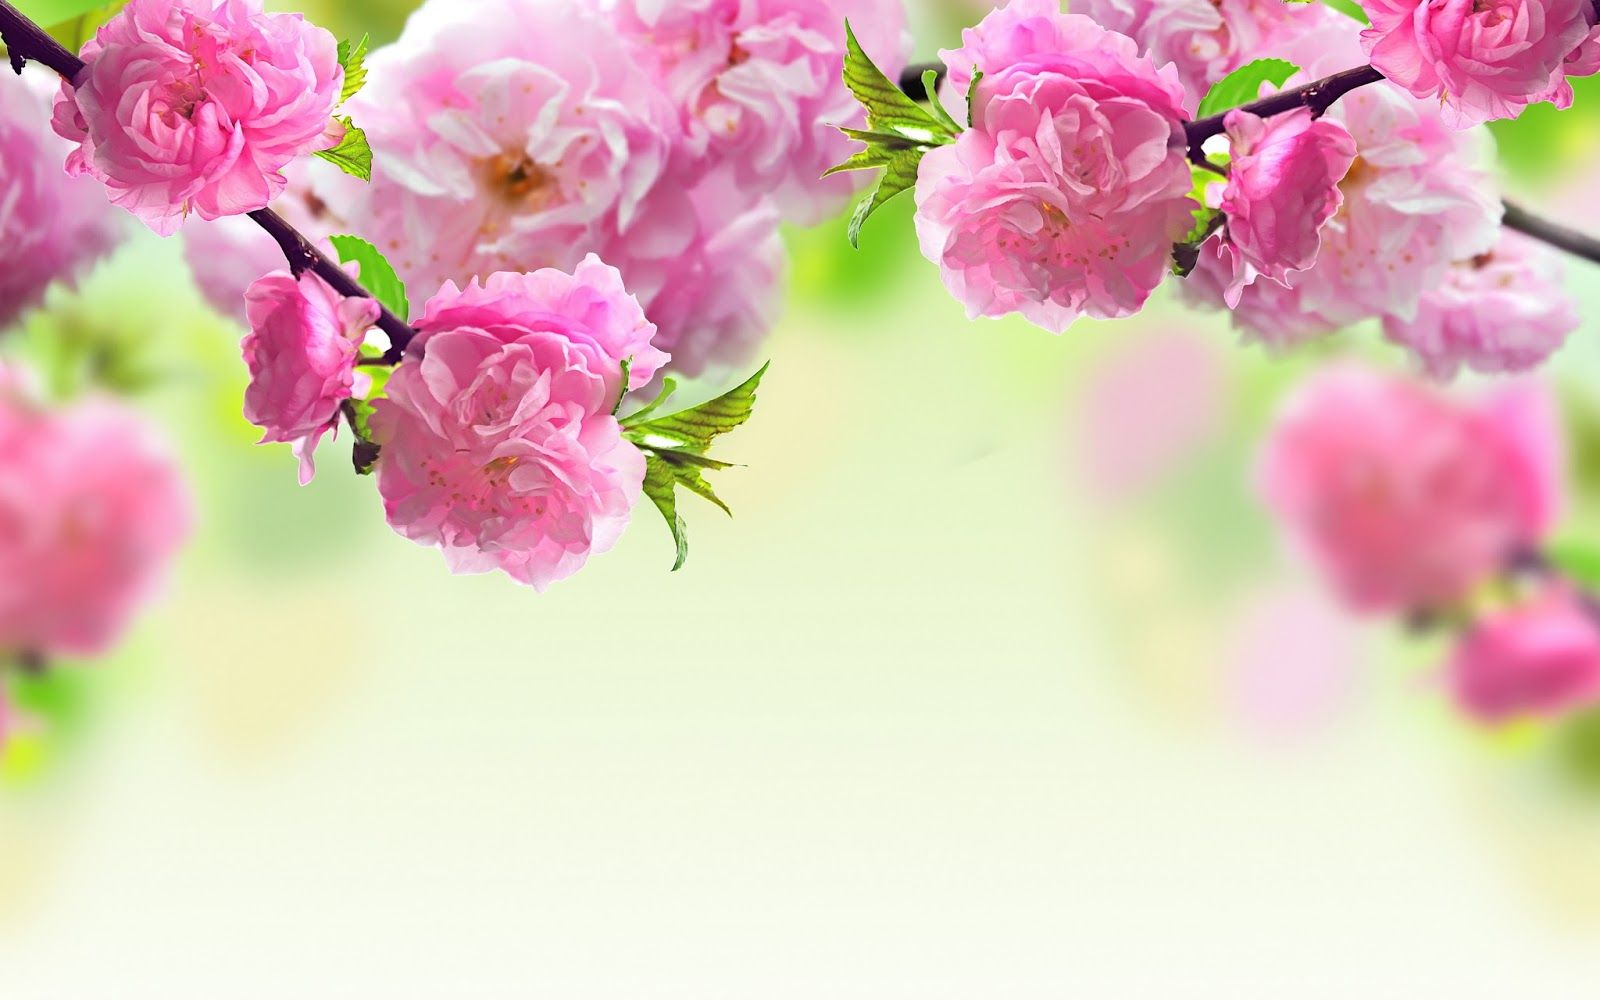 flowers wallpaper hd for desktop free download full screen - full ...